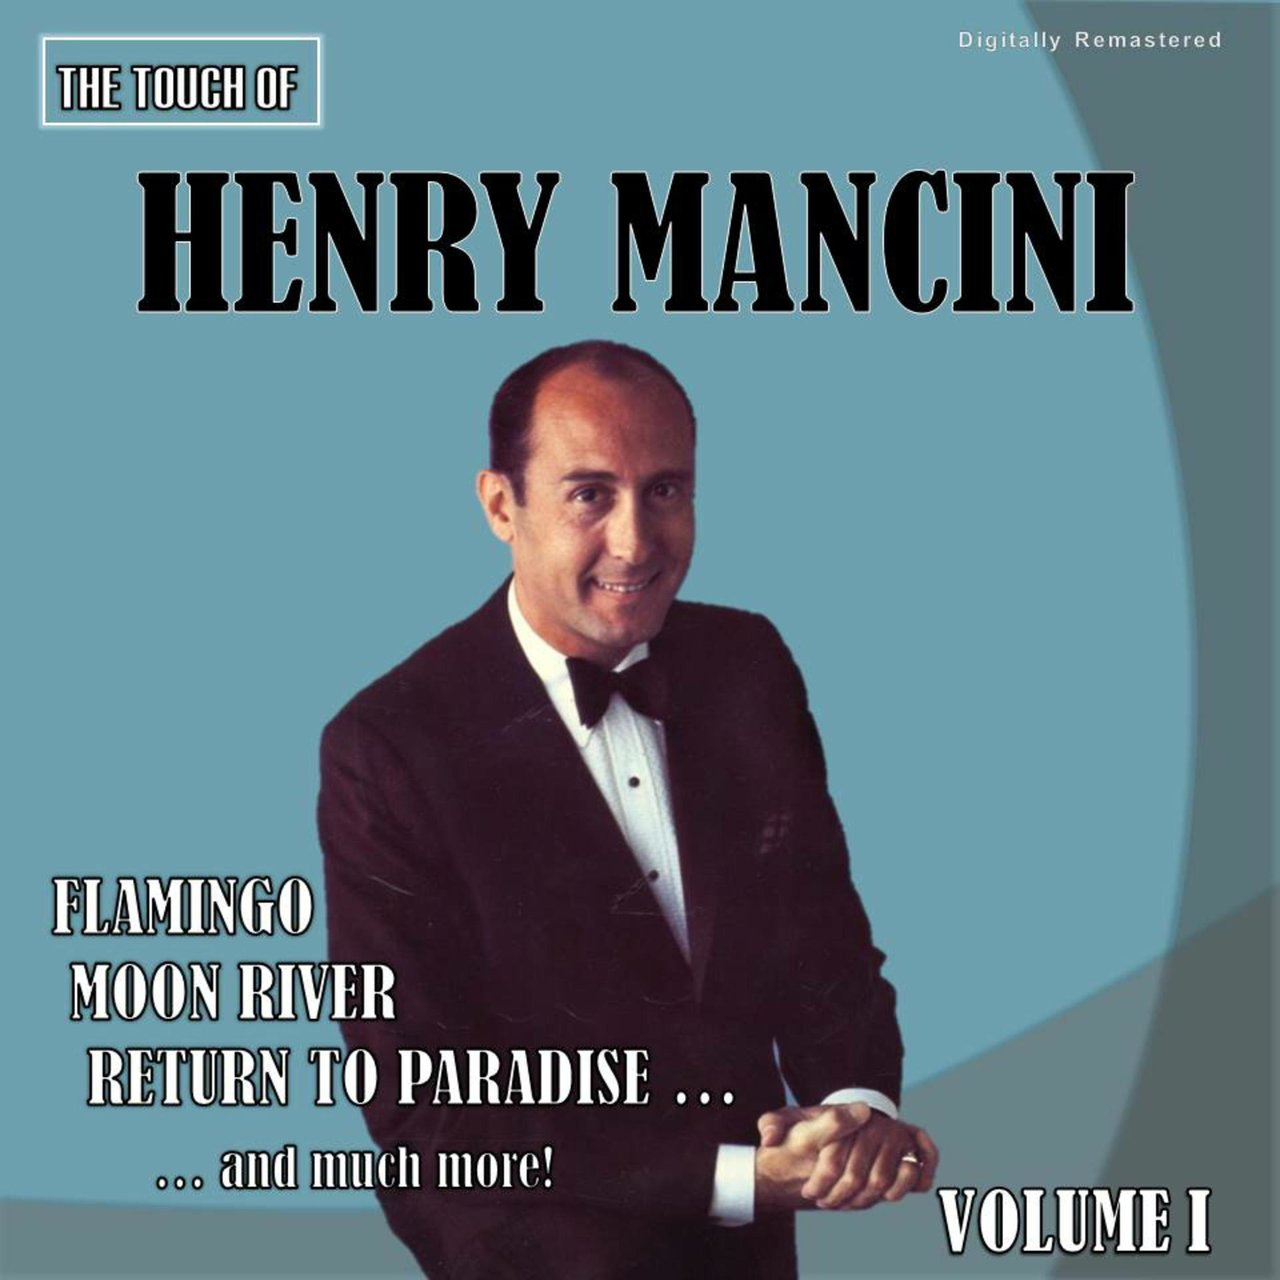 The Touch of Henry Mancini, Vol. 1 (Digitally Remastered)